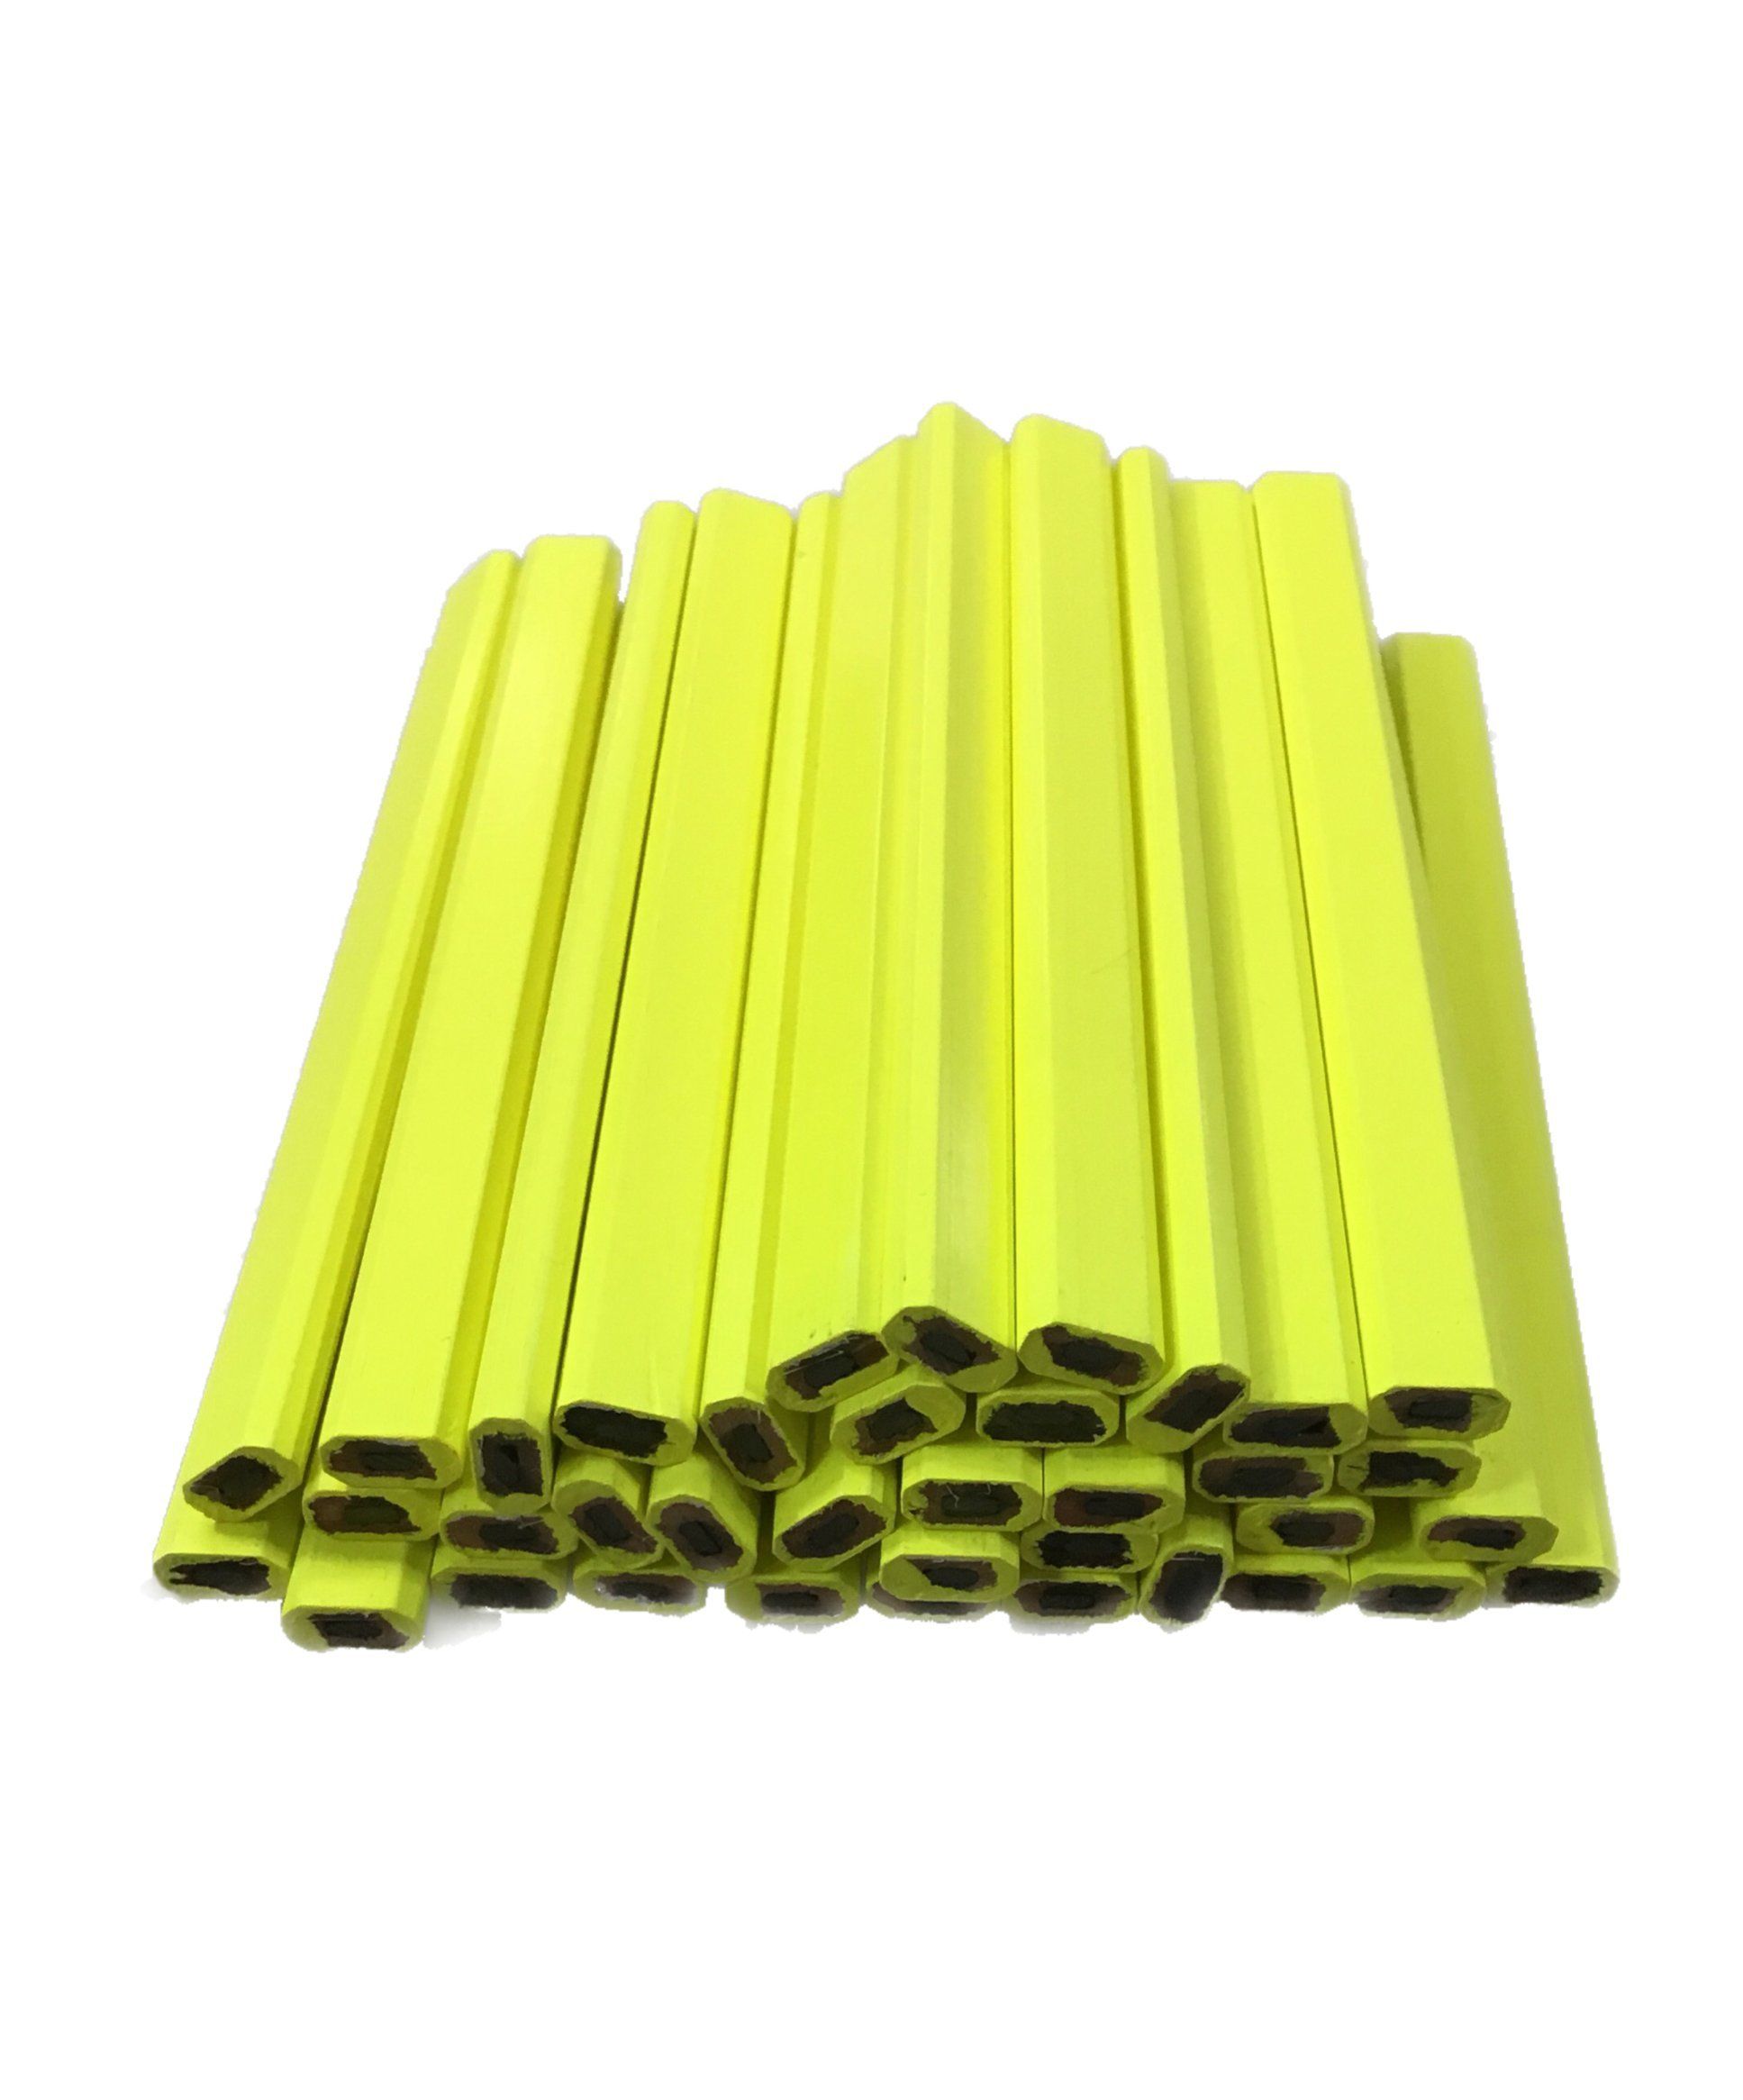 Flat Wooden Neon Yellow Carpenter Pencils - 72 Count Bulk Box Made In The USA by Rockvale Retail Carpenter Pencils (Image #1)